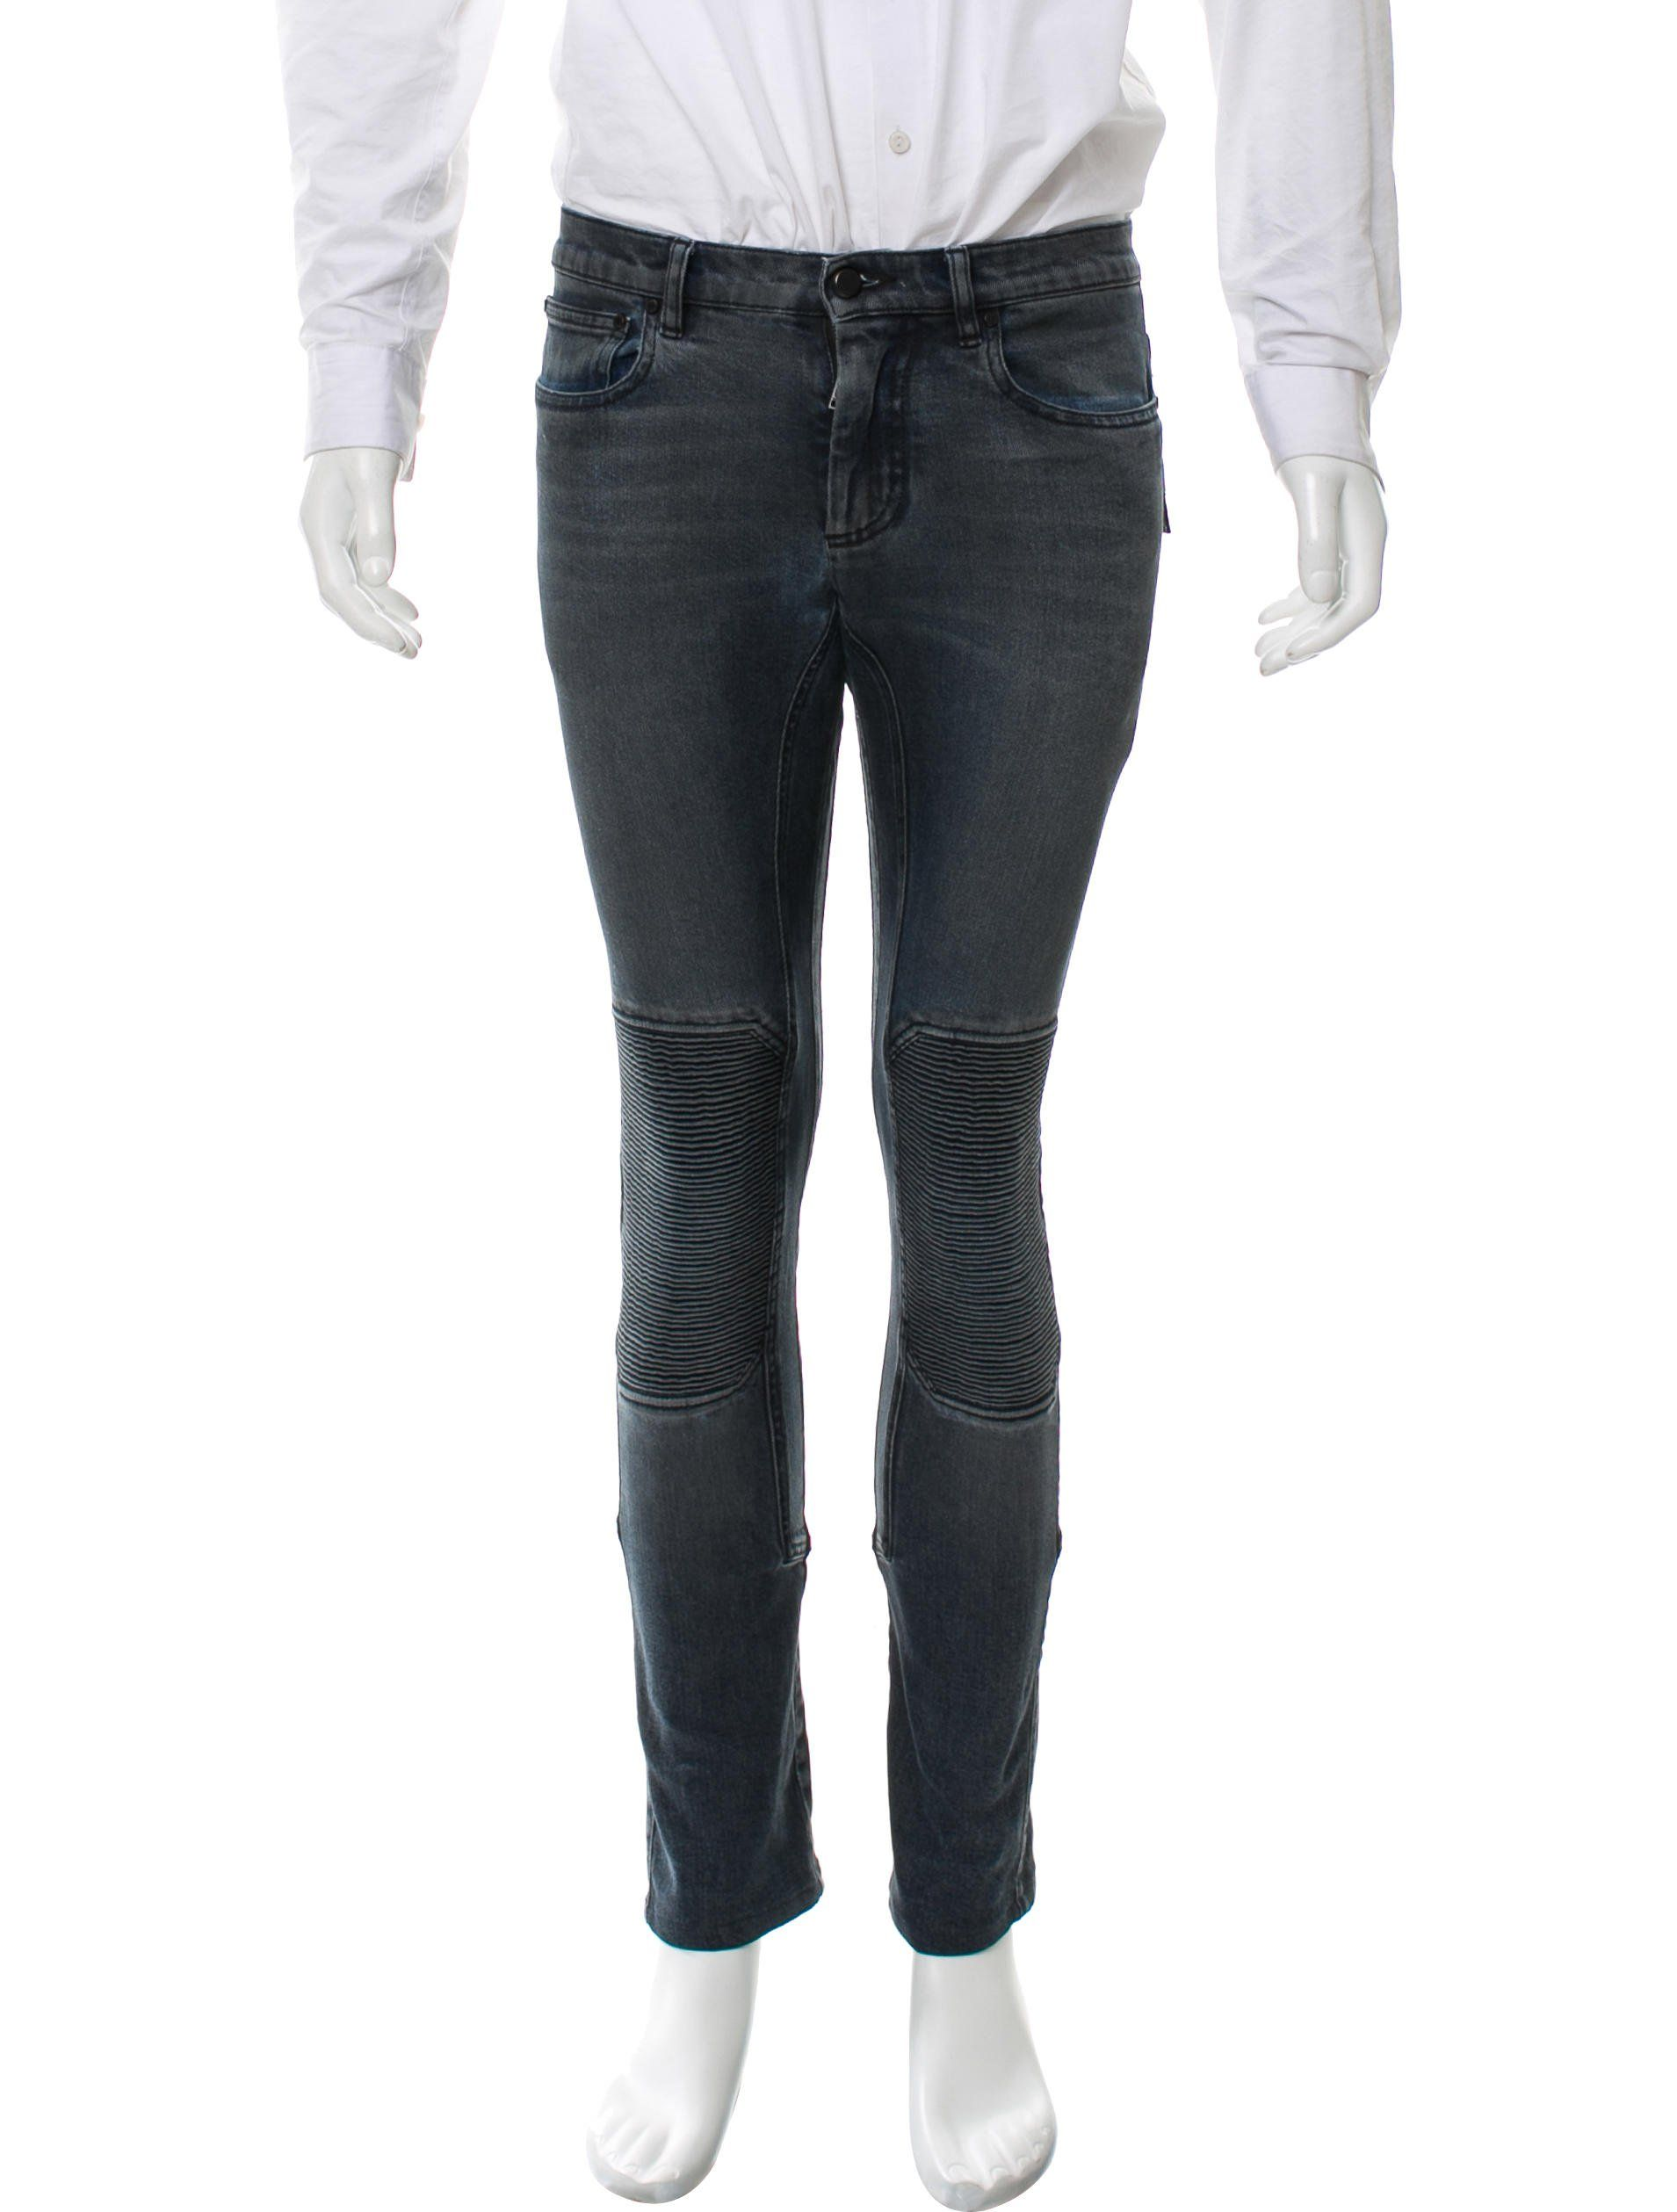 f97754bd Men's dark wash Belstaff skinny biker jeans with six pockets and zip  closure at front.